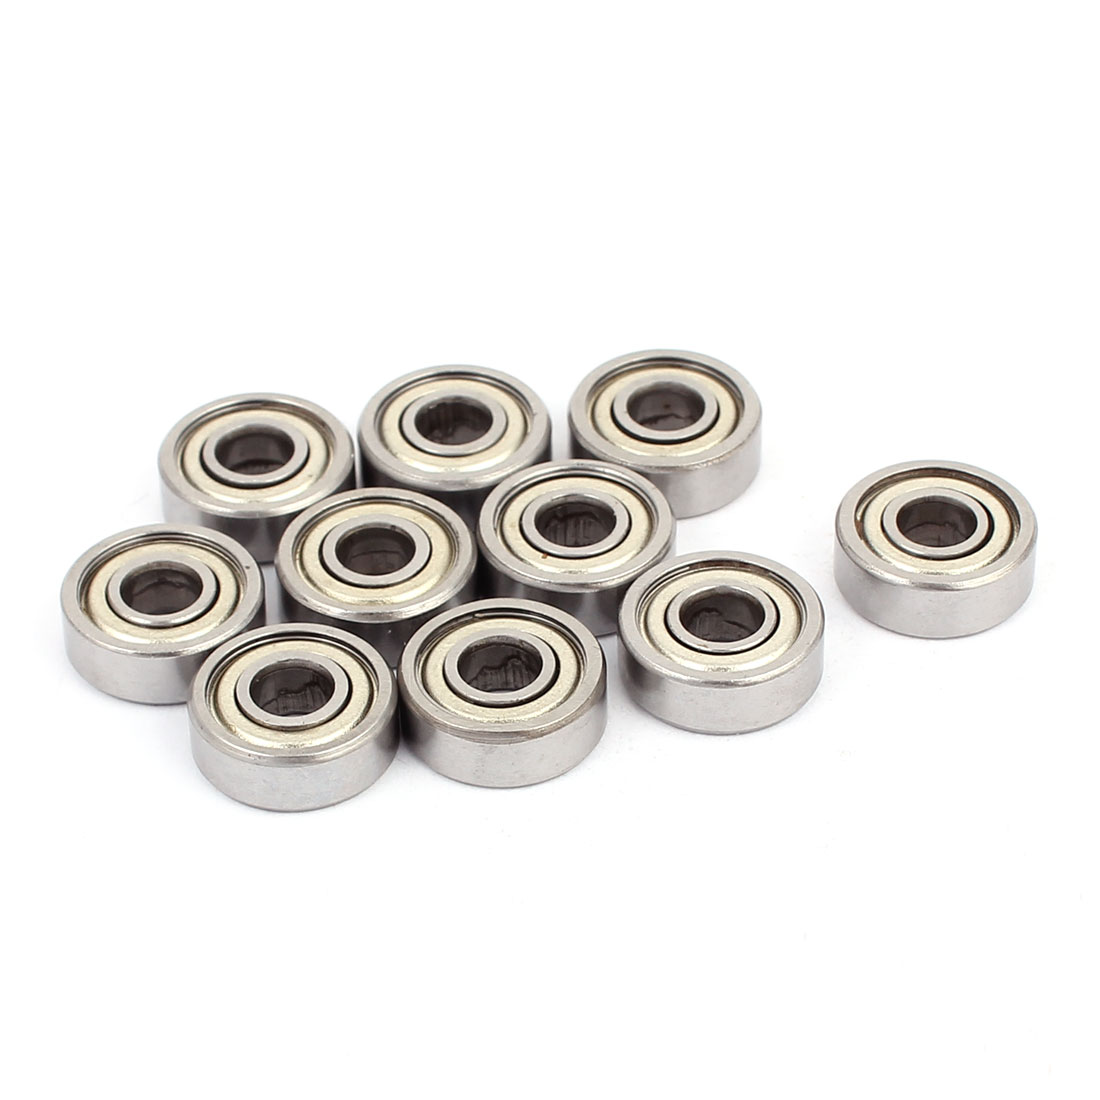 605Z Double Shielded Deep Groove Ball Bearings Silver Tone 14mmx5mmx5mm 20pcs